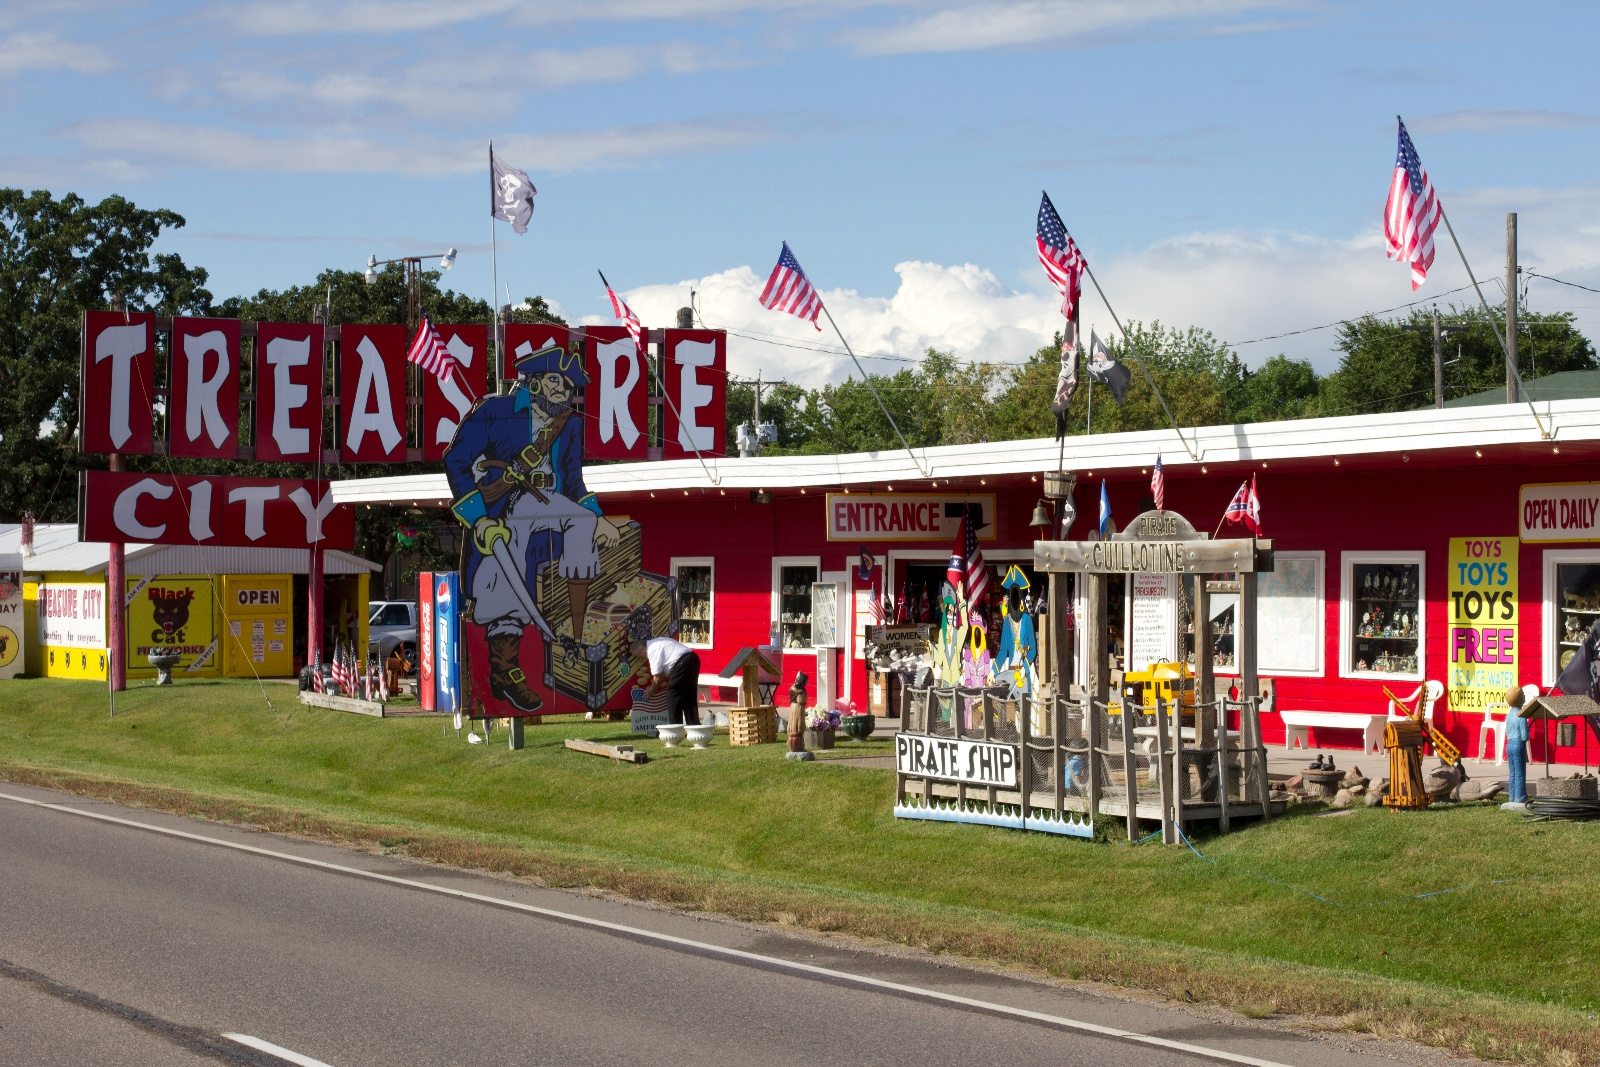 Iconic-Treasure City, Royalton, MN-For Sale